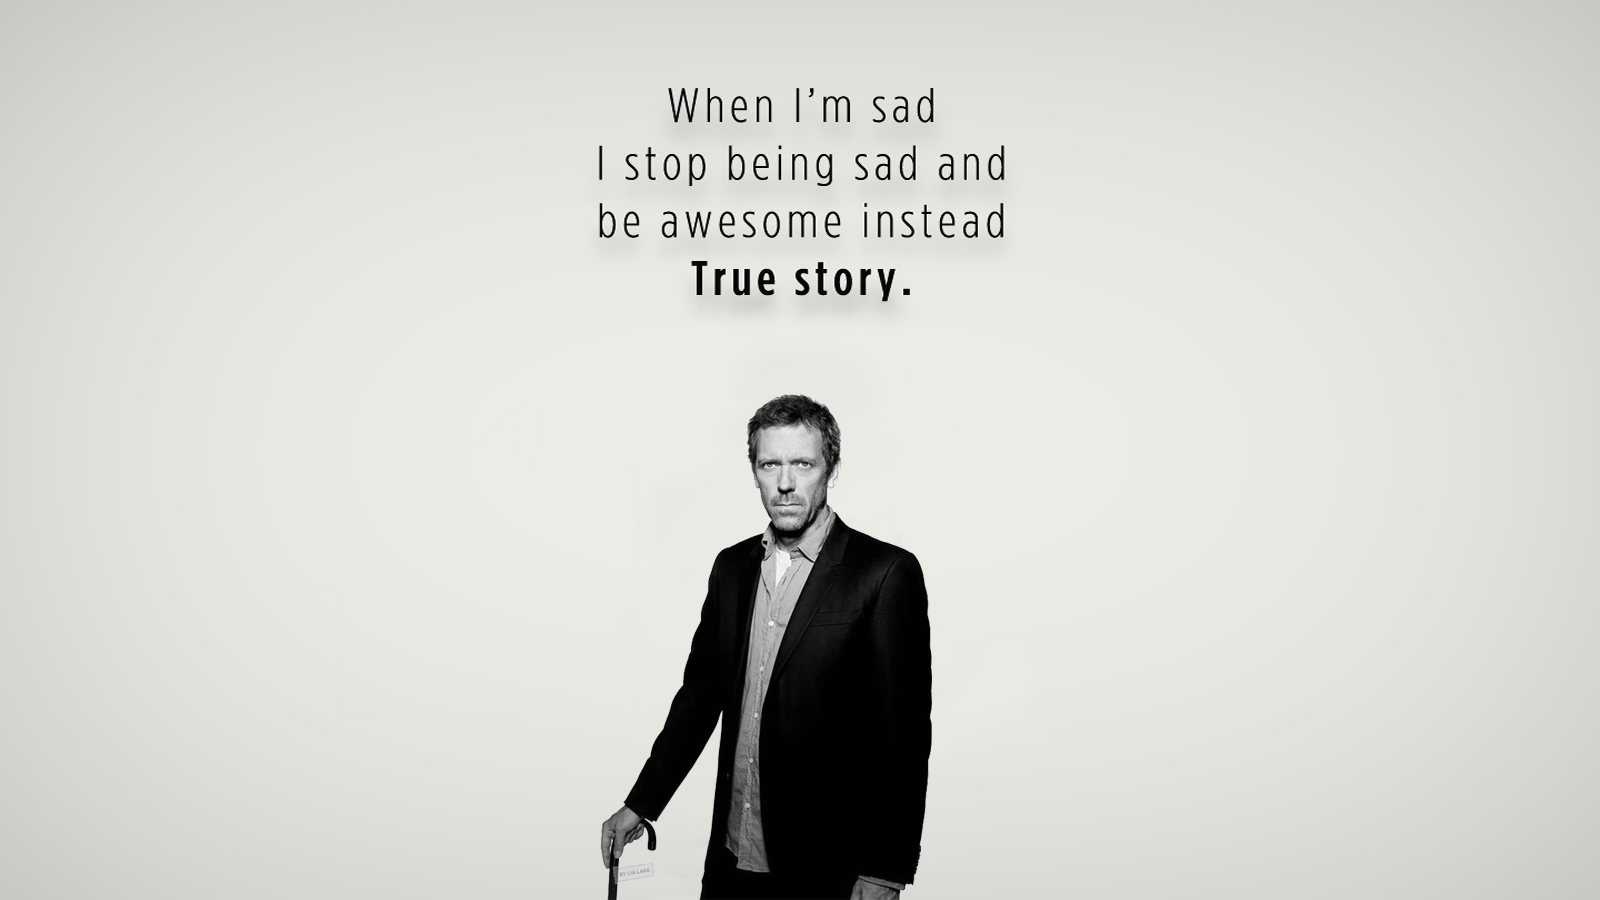 Gregory House Quotes. QuotesGram